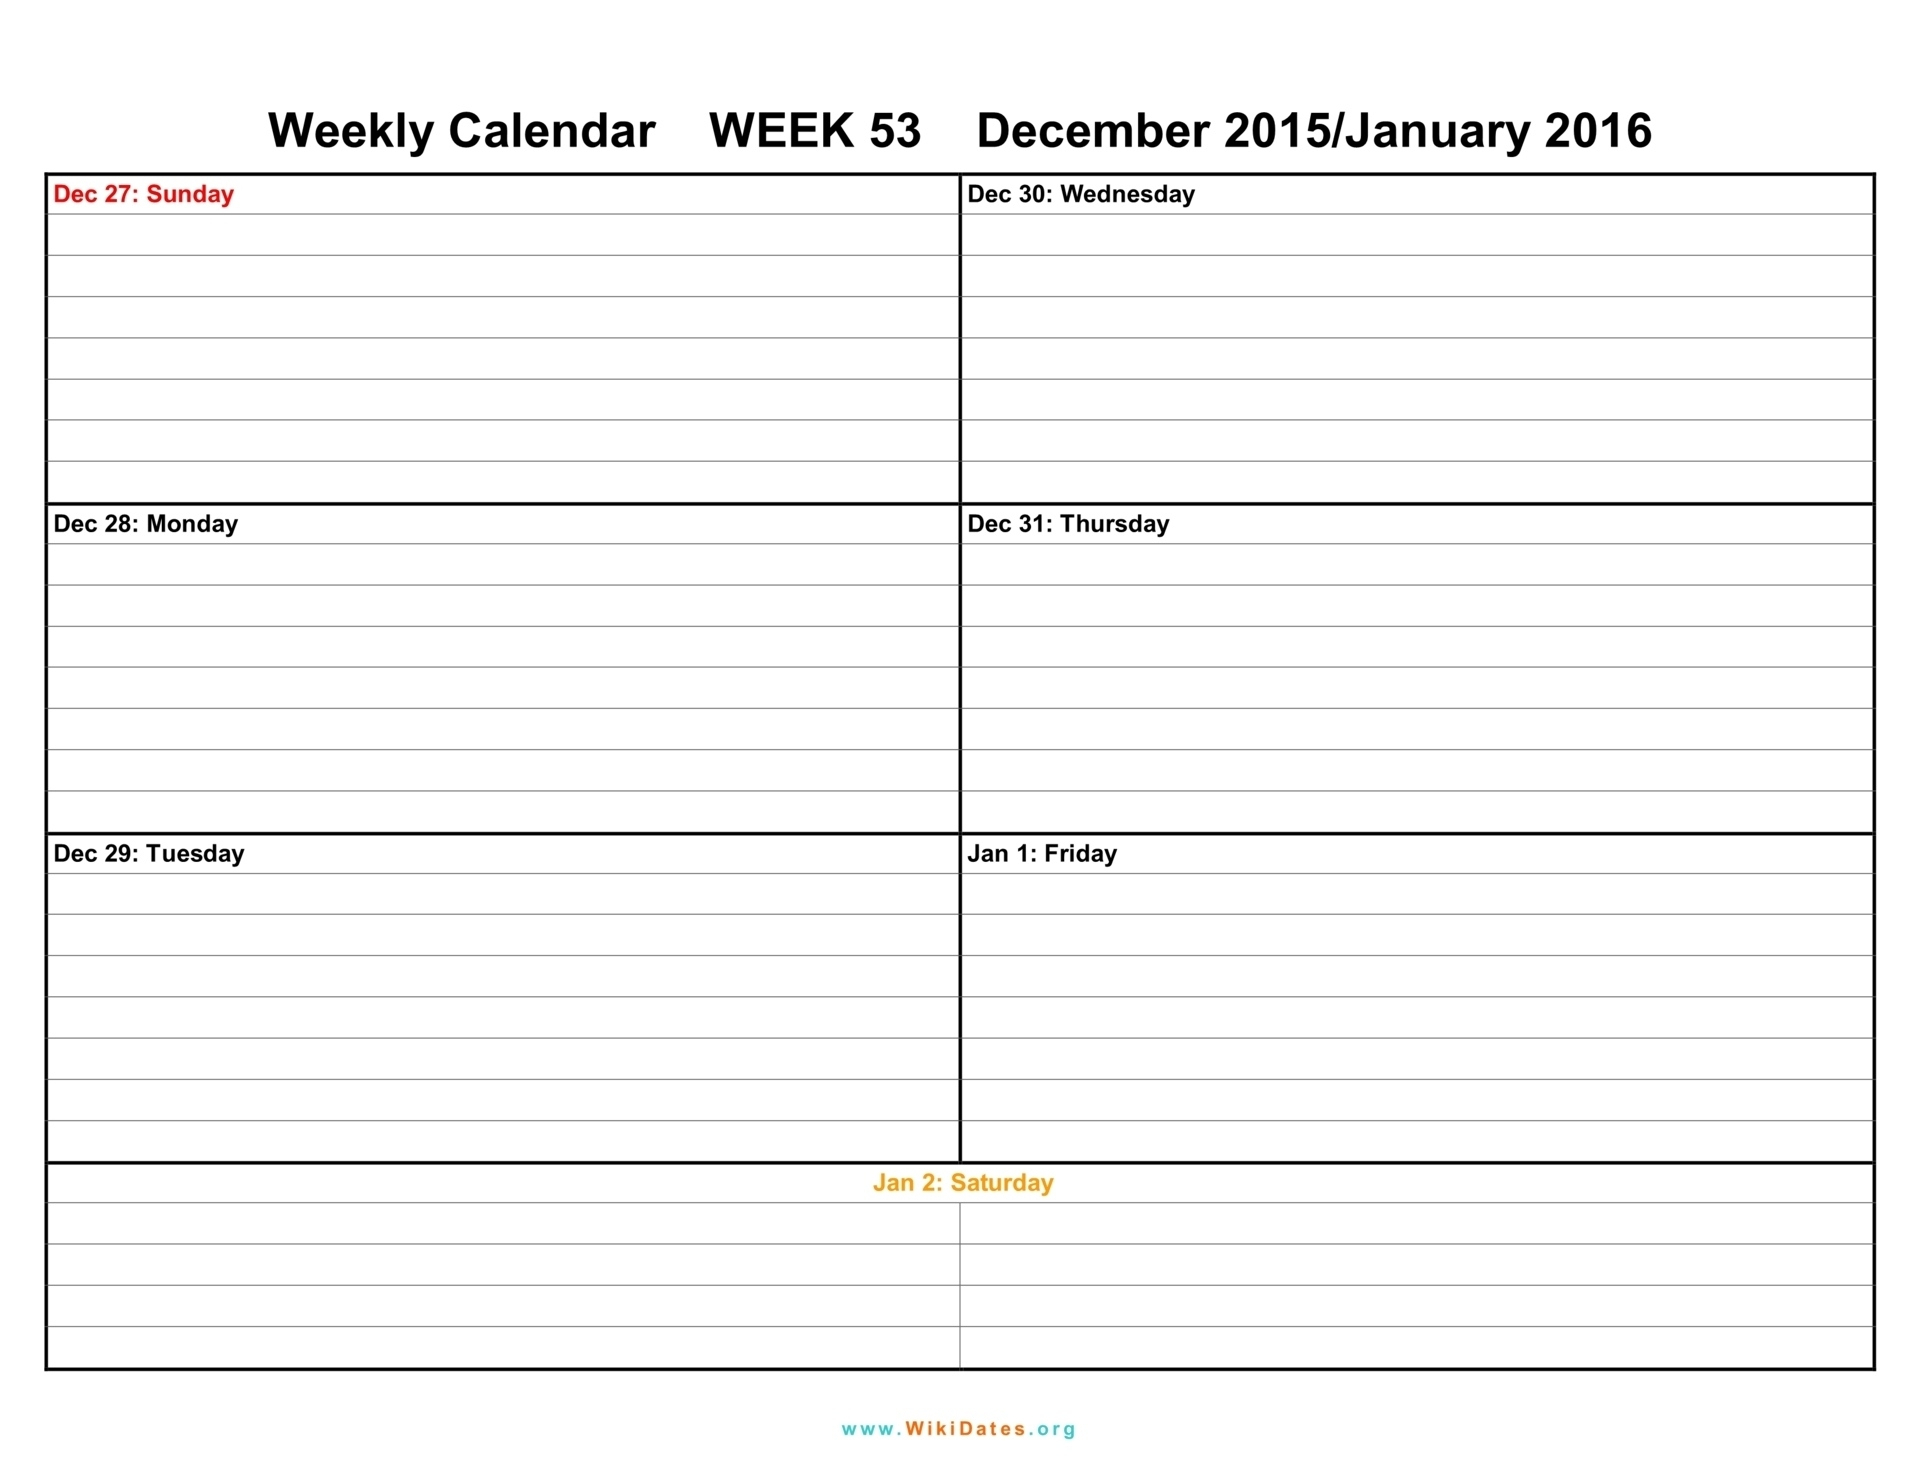 Free Printable 2 Week Calendar Template • Printable Blank Calendar within Printable 2 Week Calendar Template